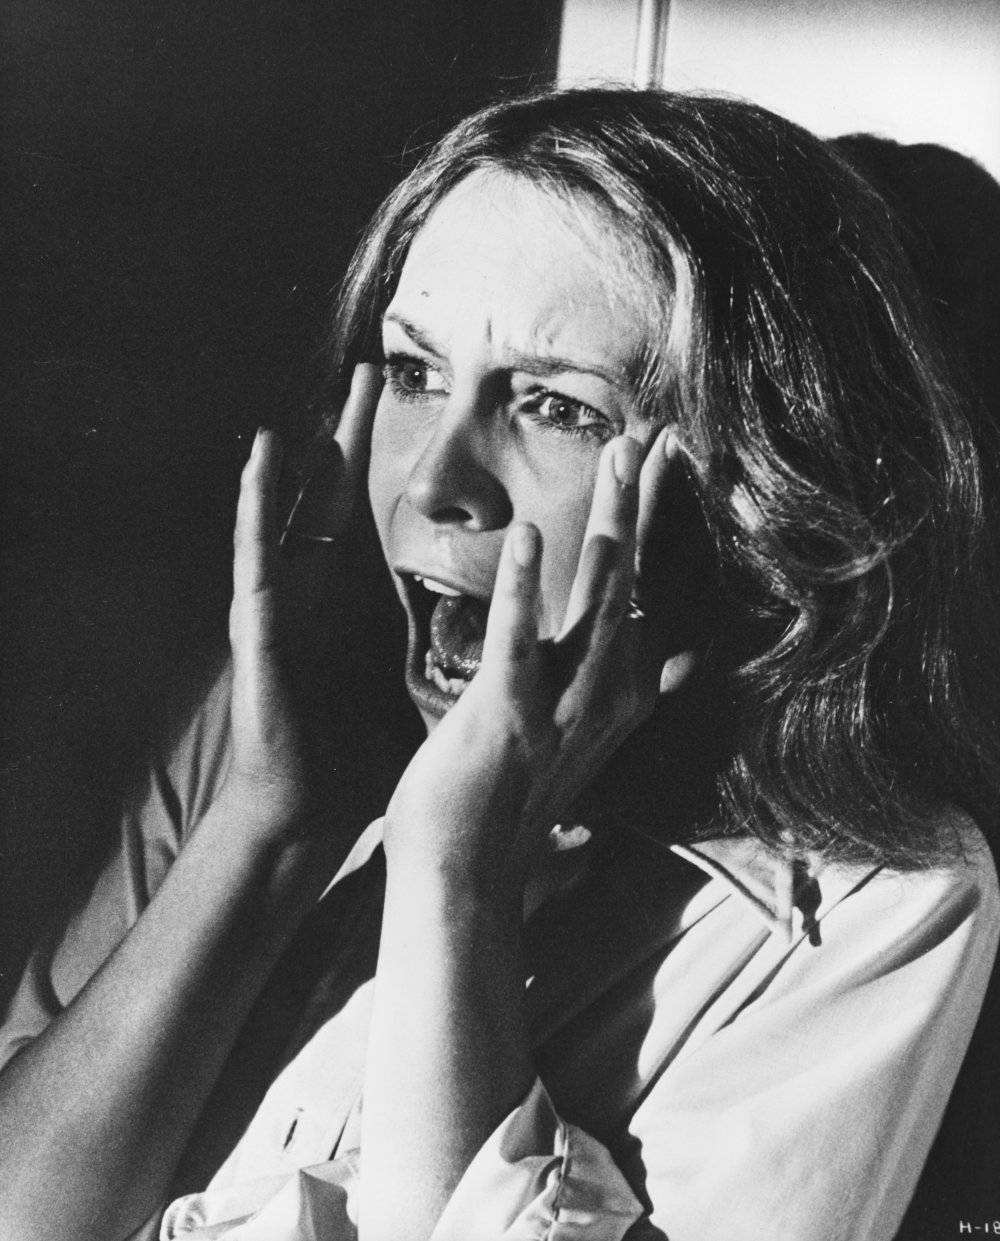 Jamie Lee Curtis as Laurie Strode, the 'final girl' in Halloween (1978)